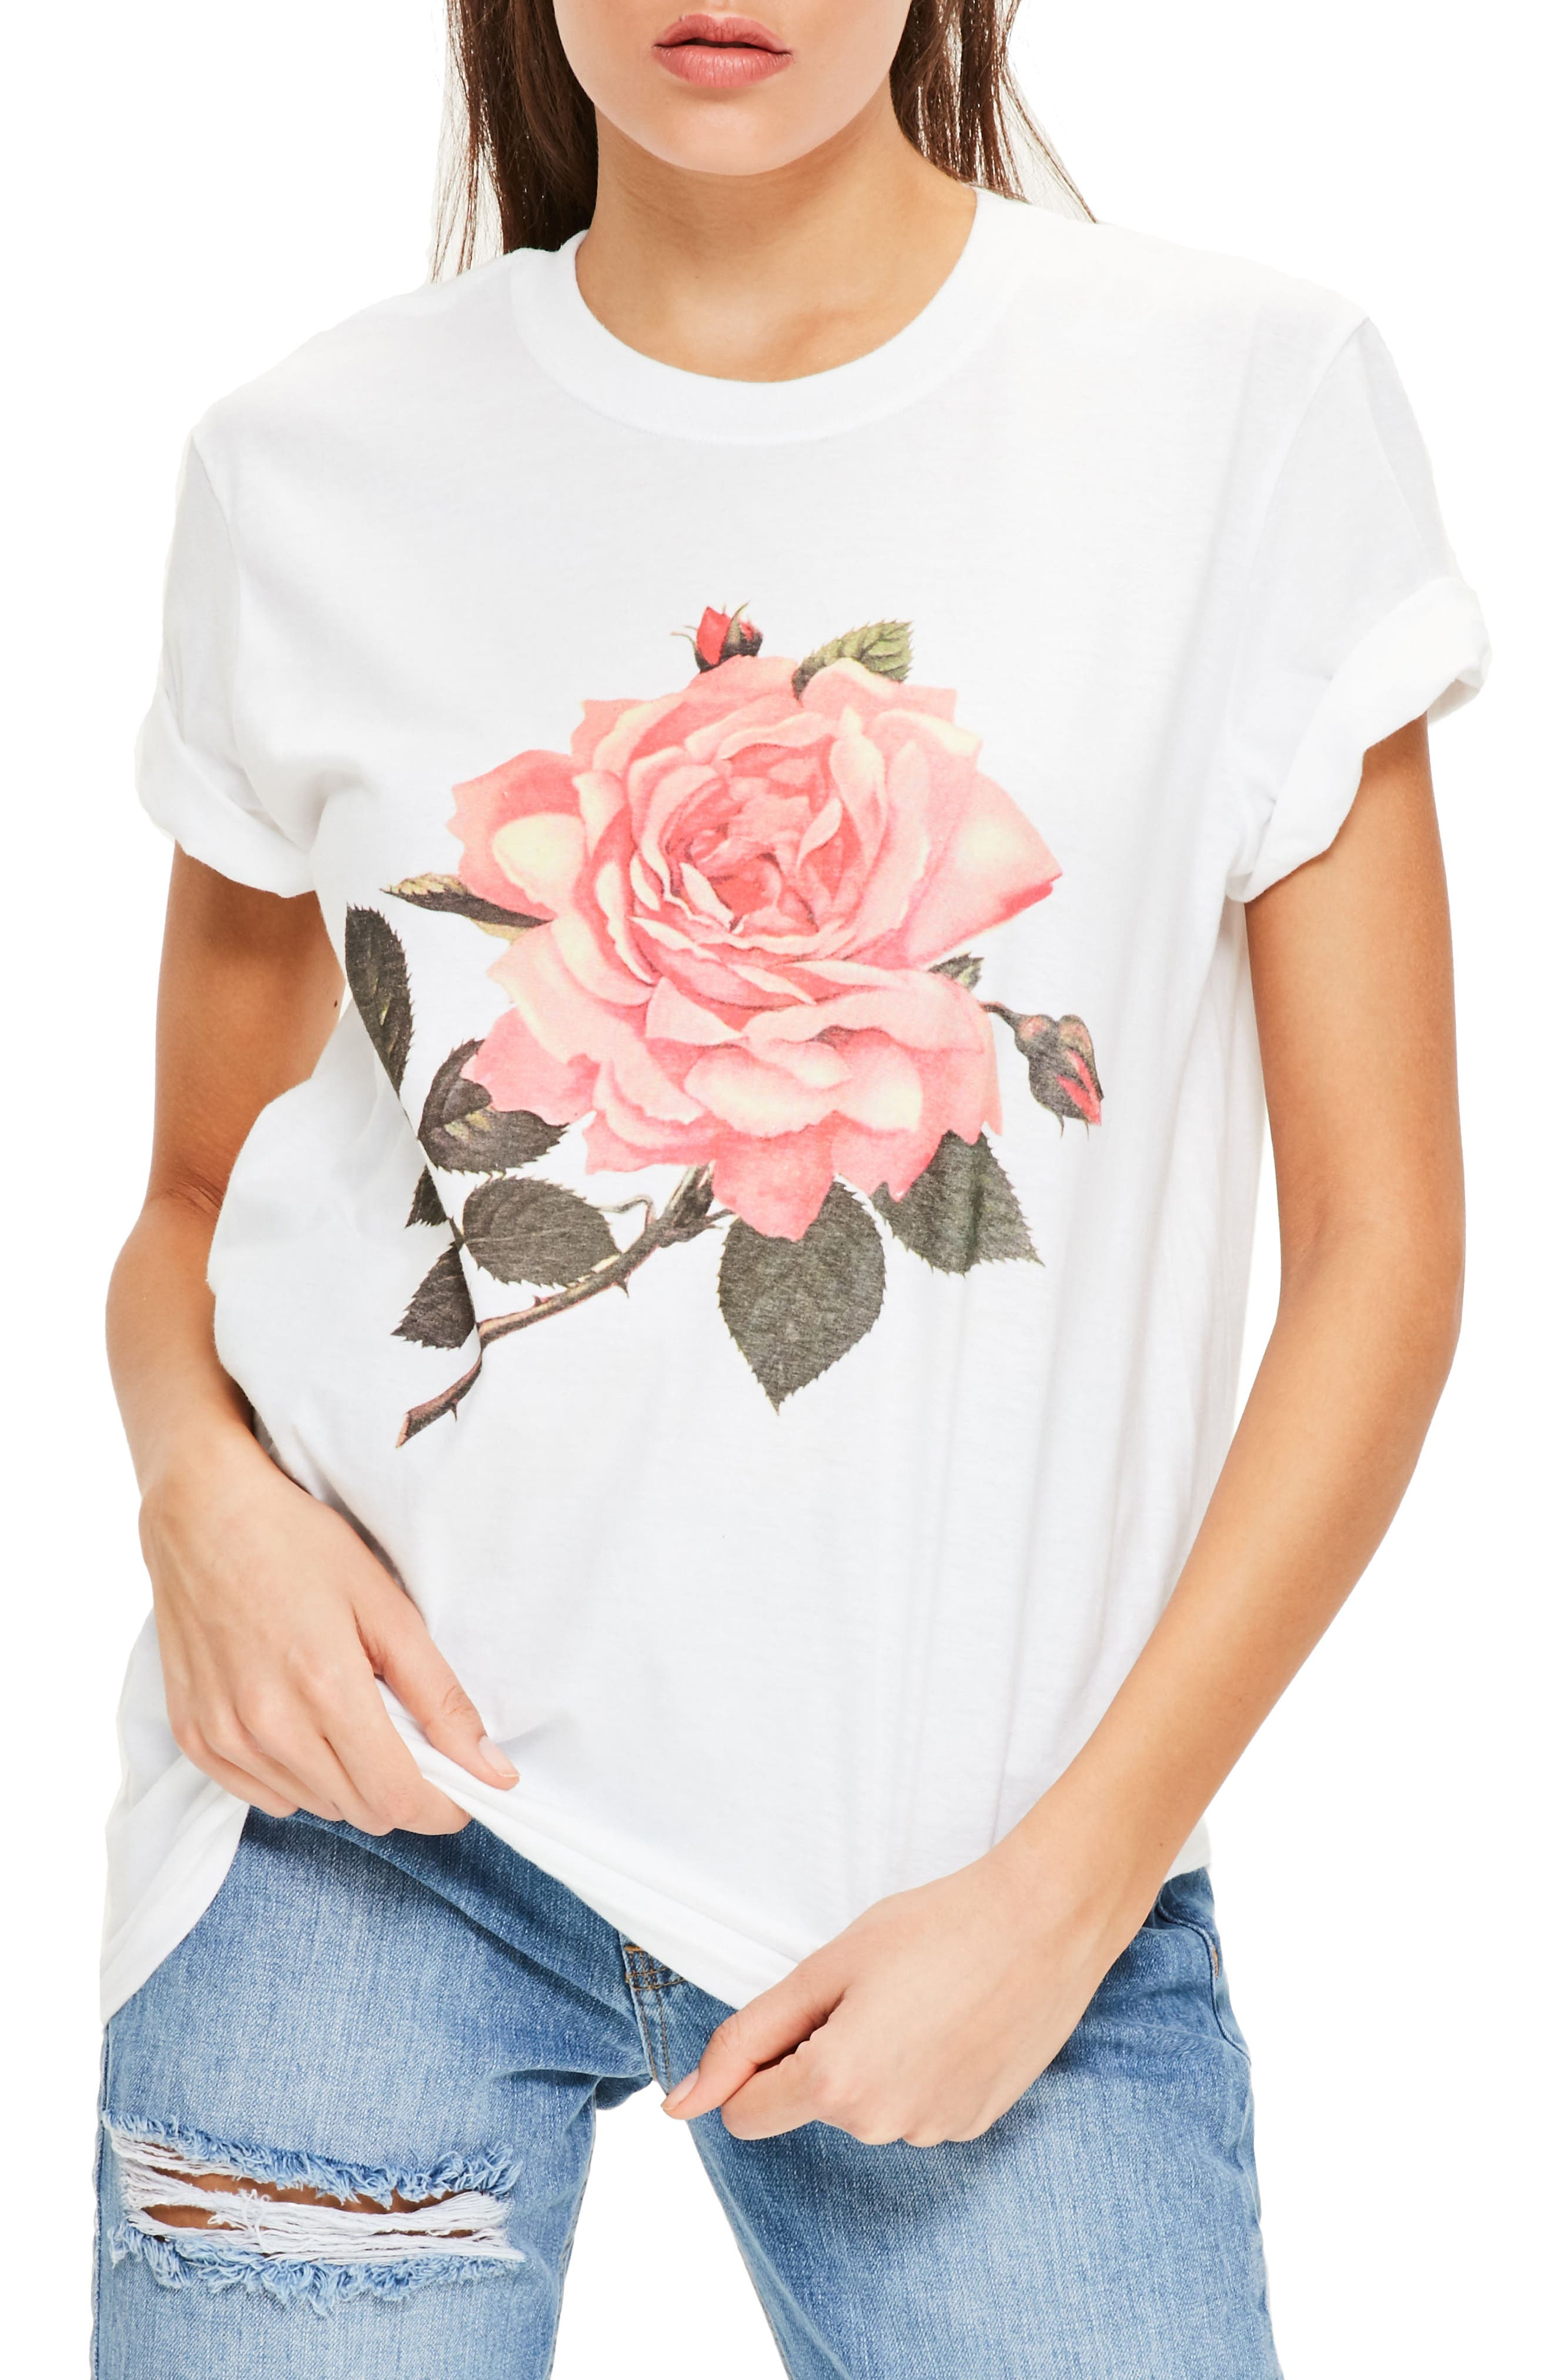 Main Image - Missguided Floral Print Graphic Tee